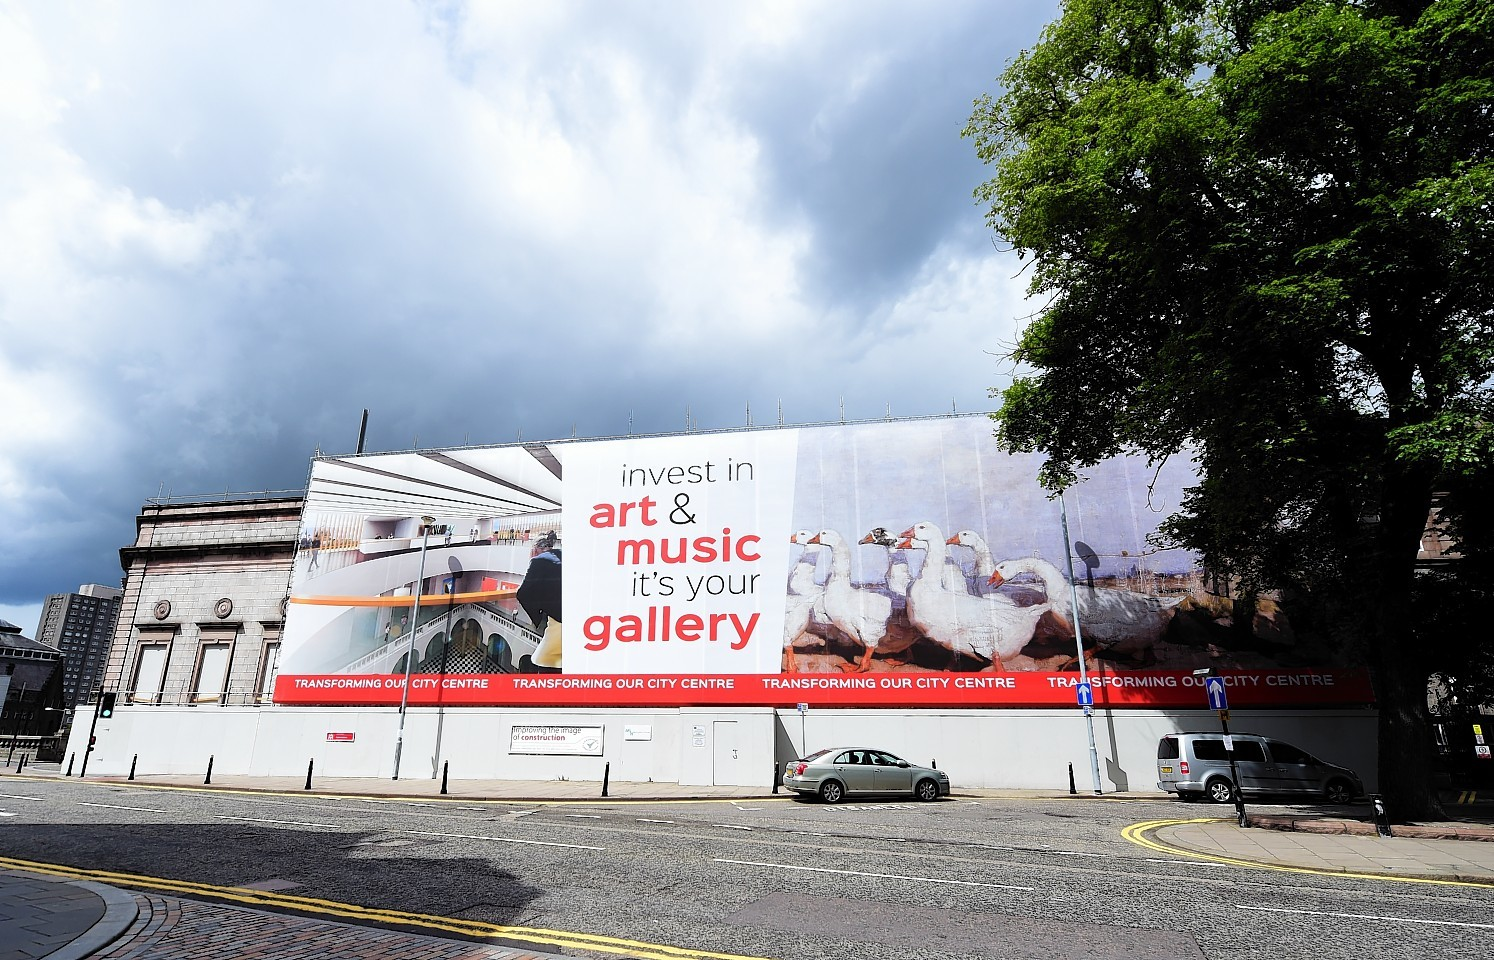 The gallery has been covered in a 12 metre high wrap